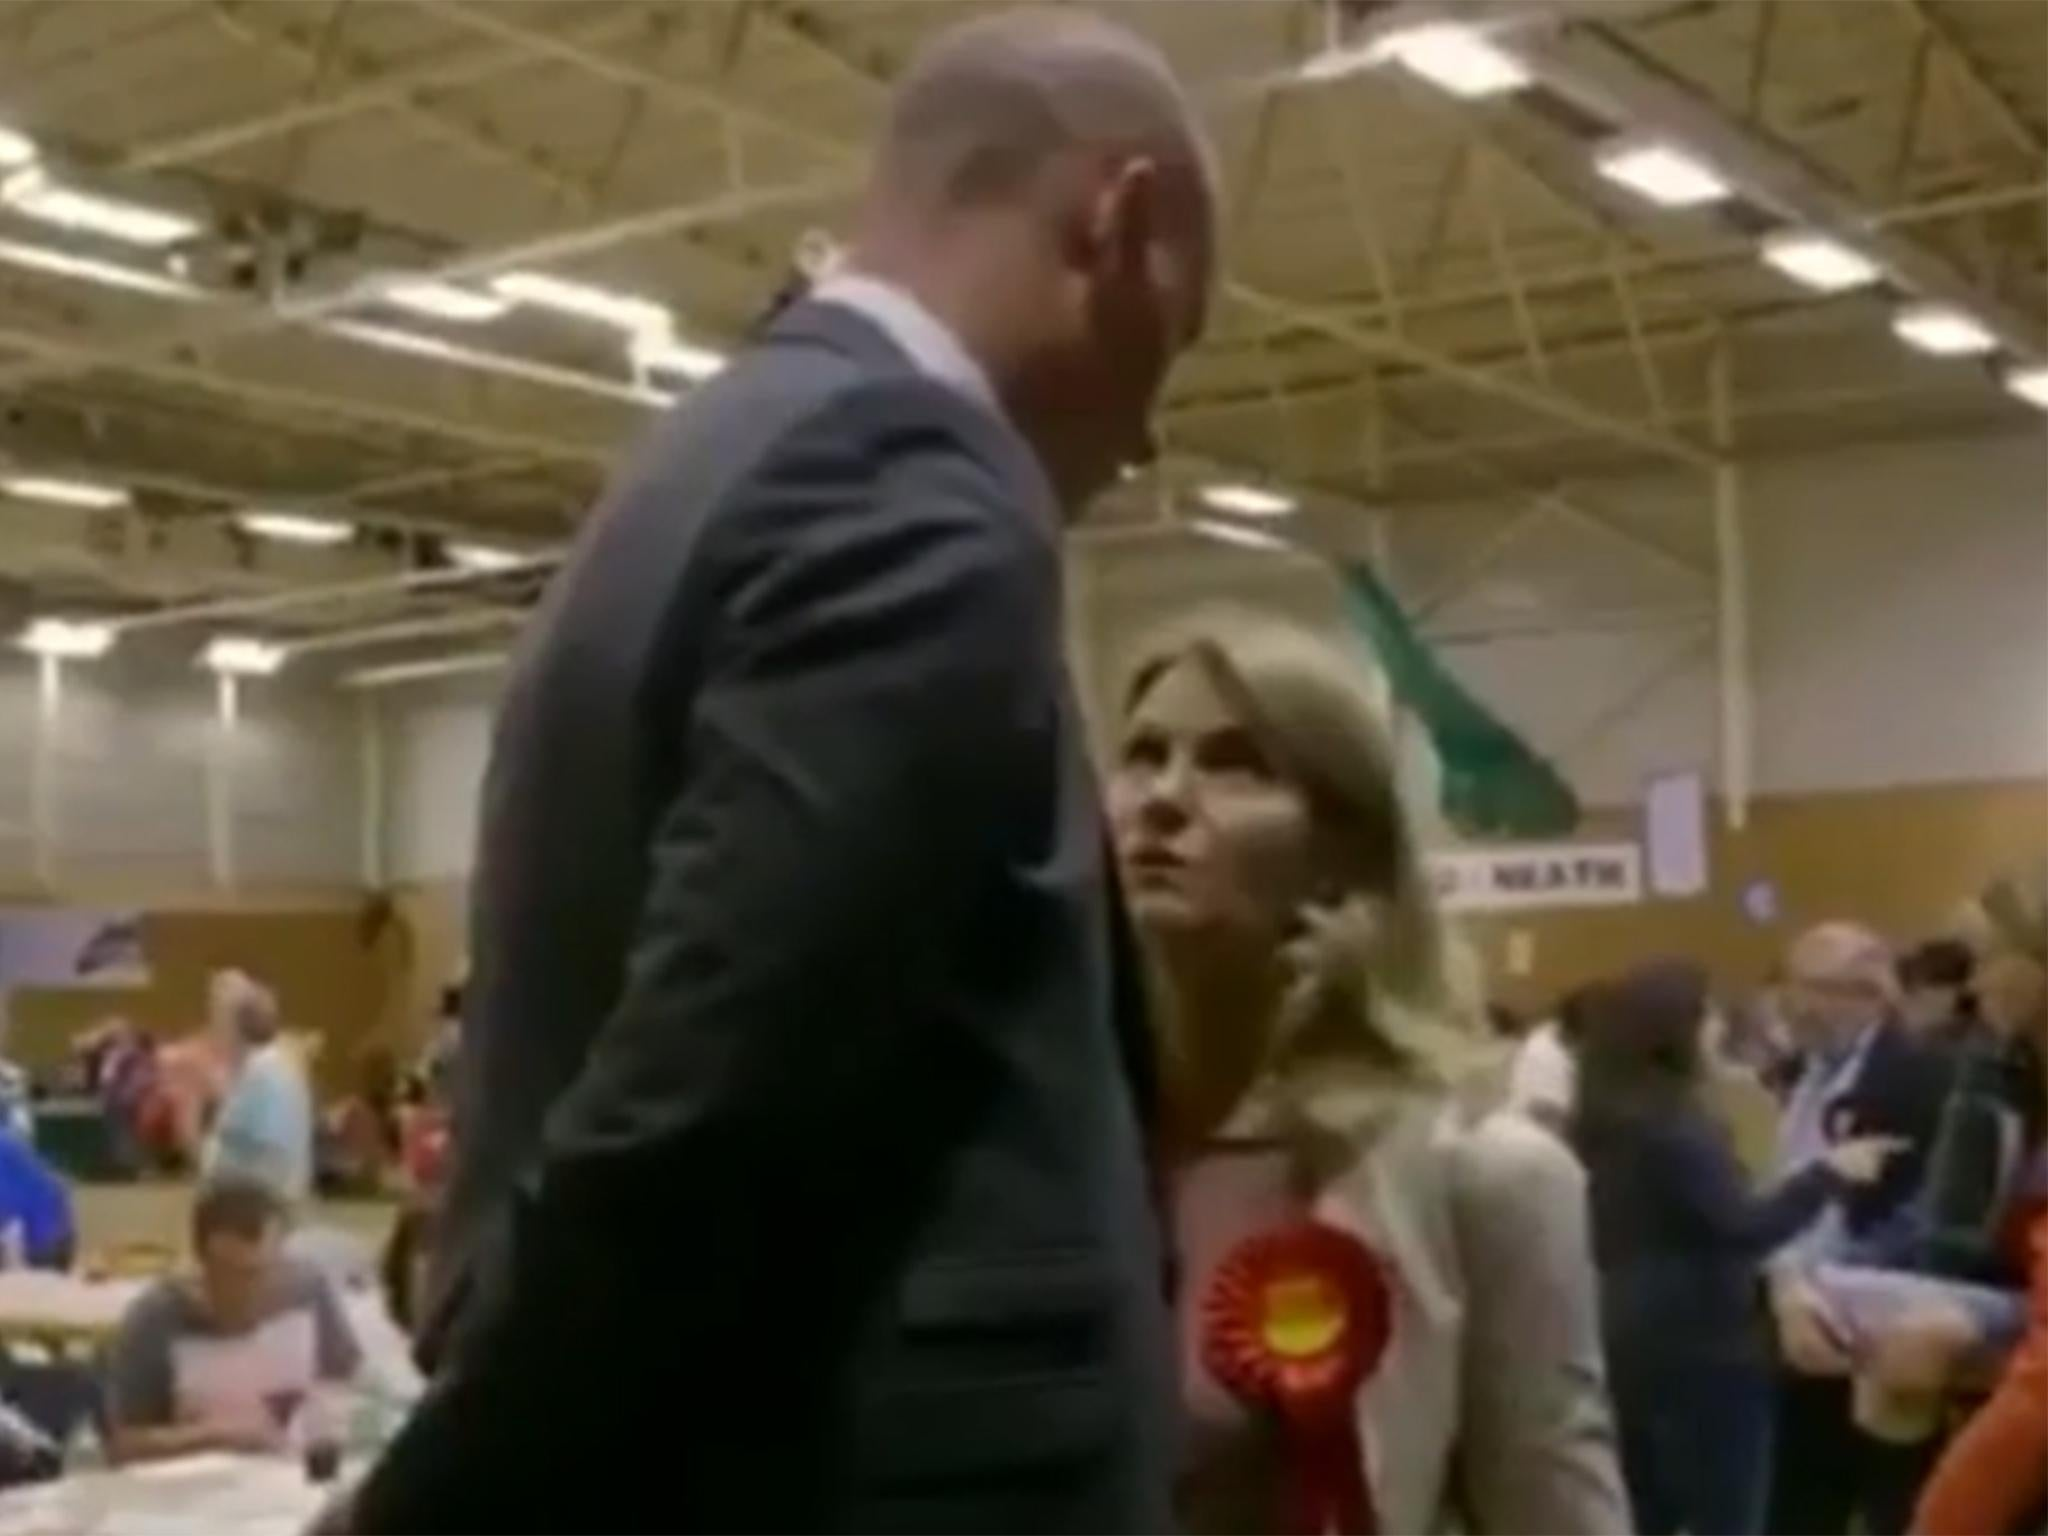 Labour MP's former Danish PM wife gives him public dressing down in BBC documentary